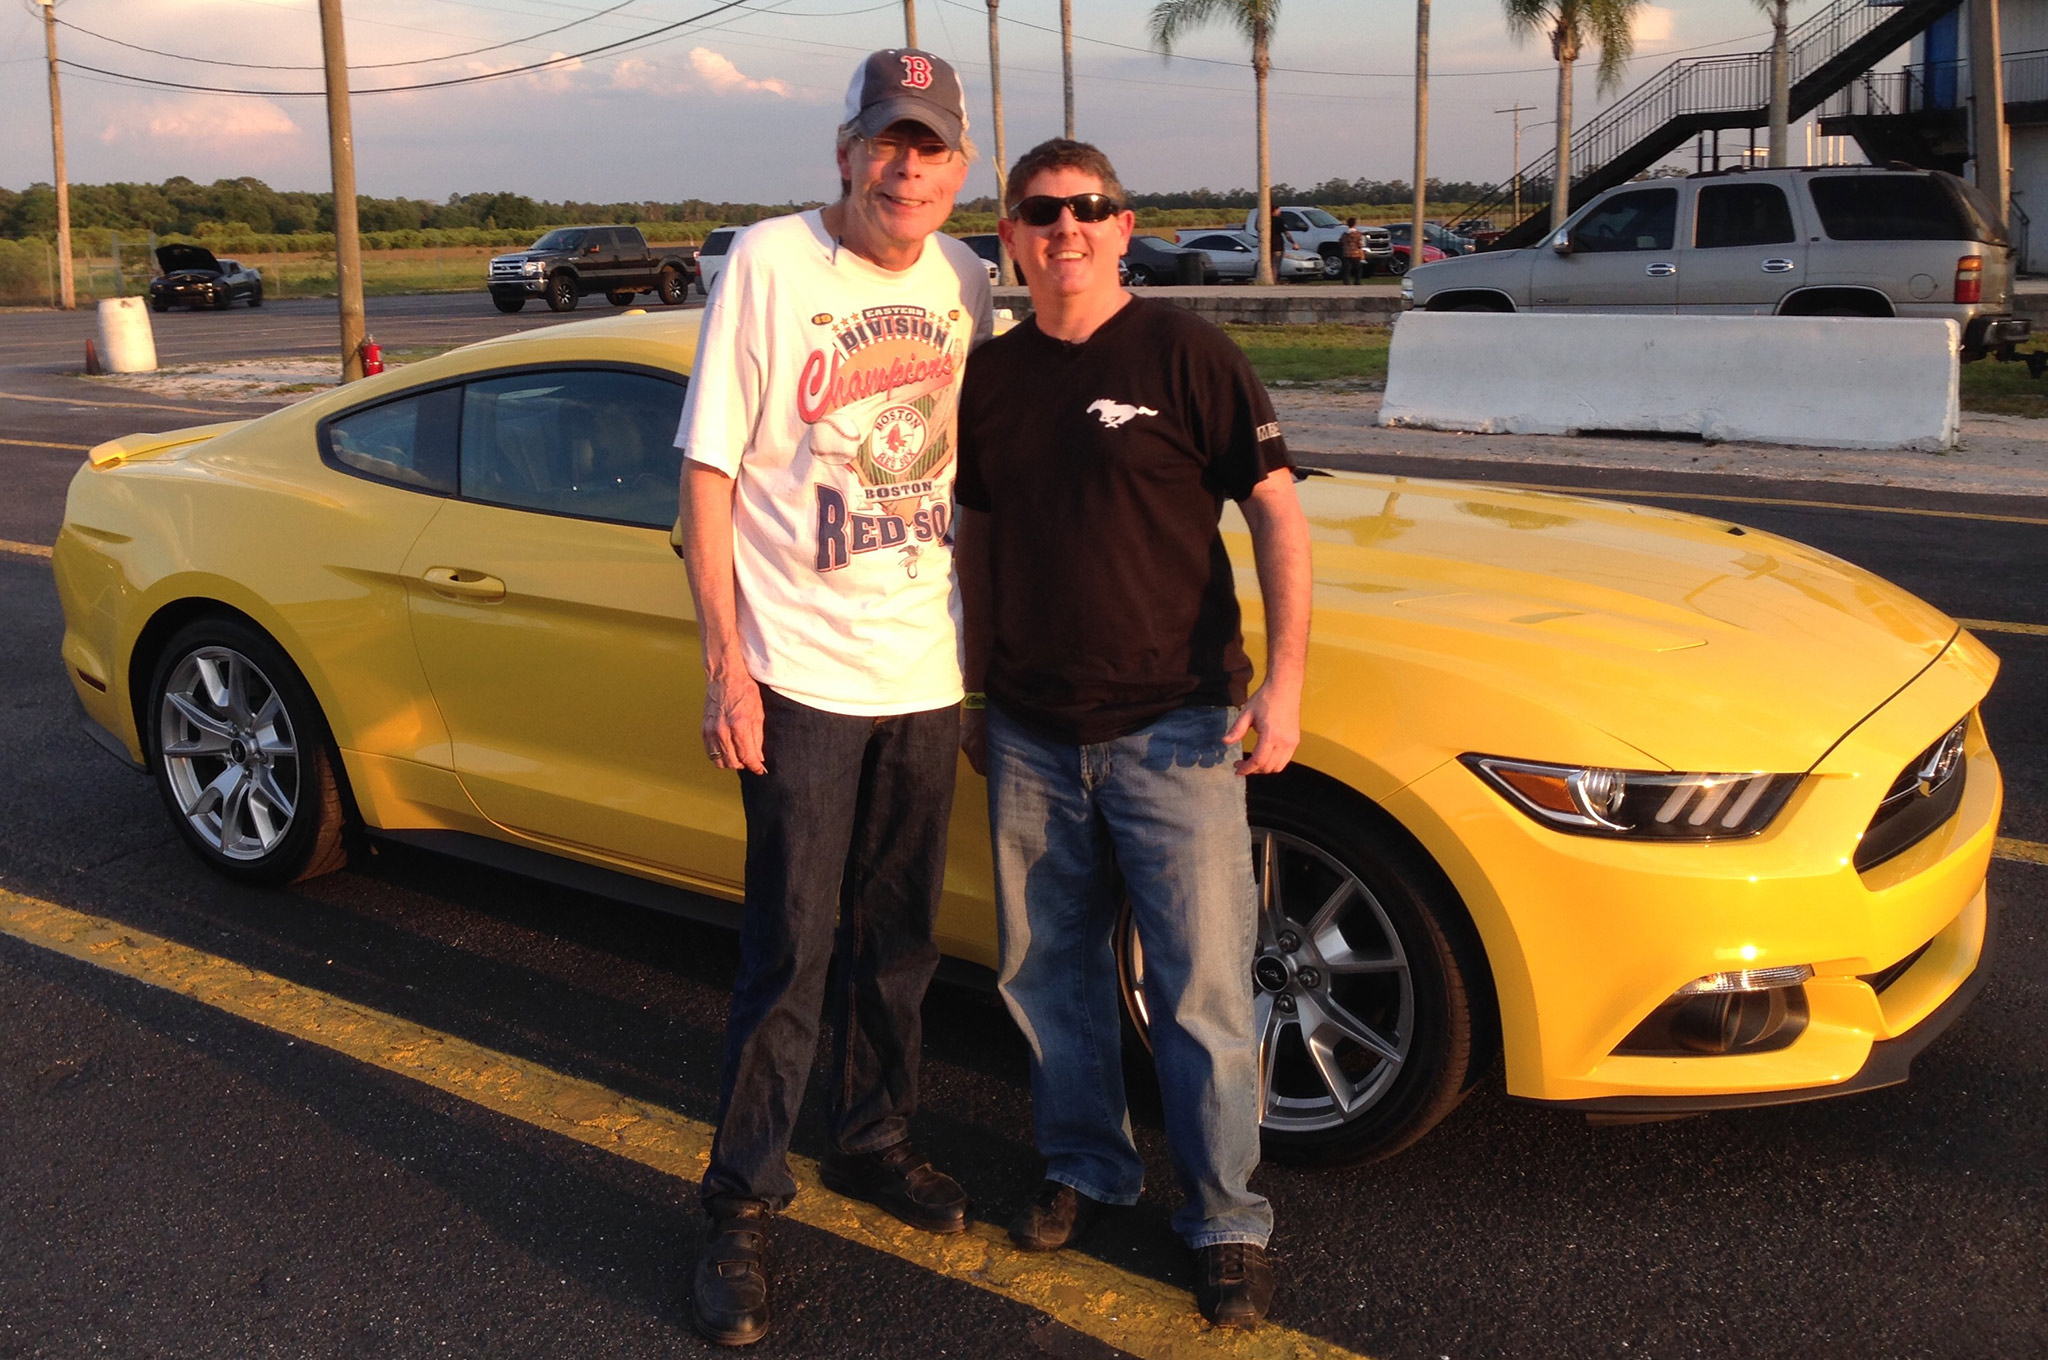 Author Stephen King was impressed with the 2015 Mustang GT. We wonder if he'll make it the subject of a new book?